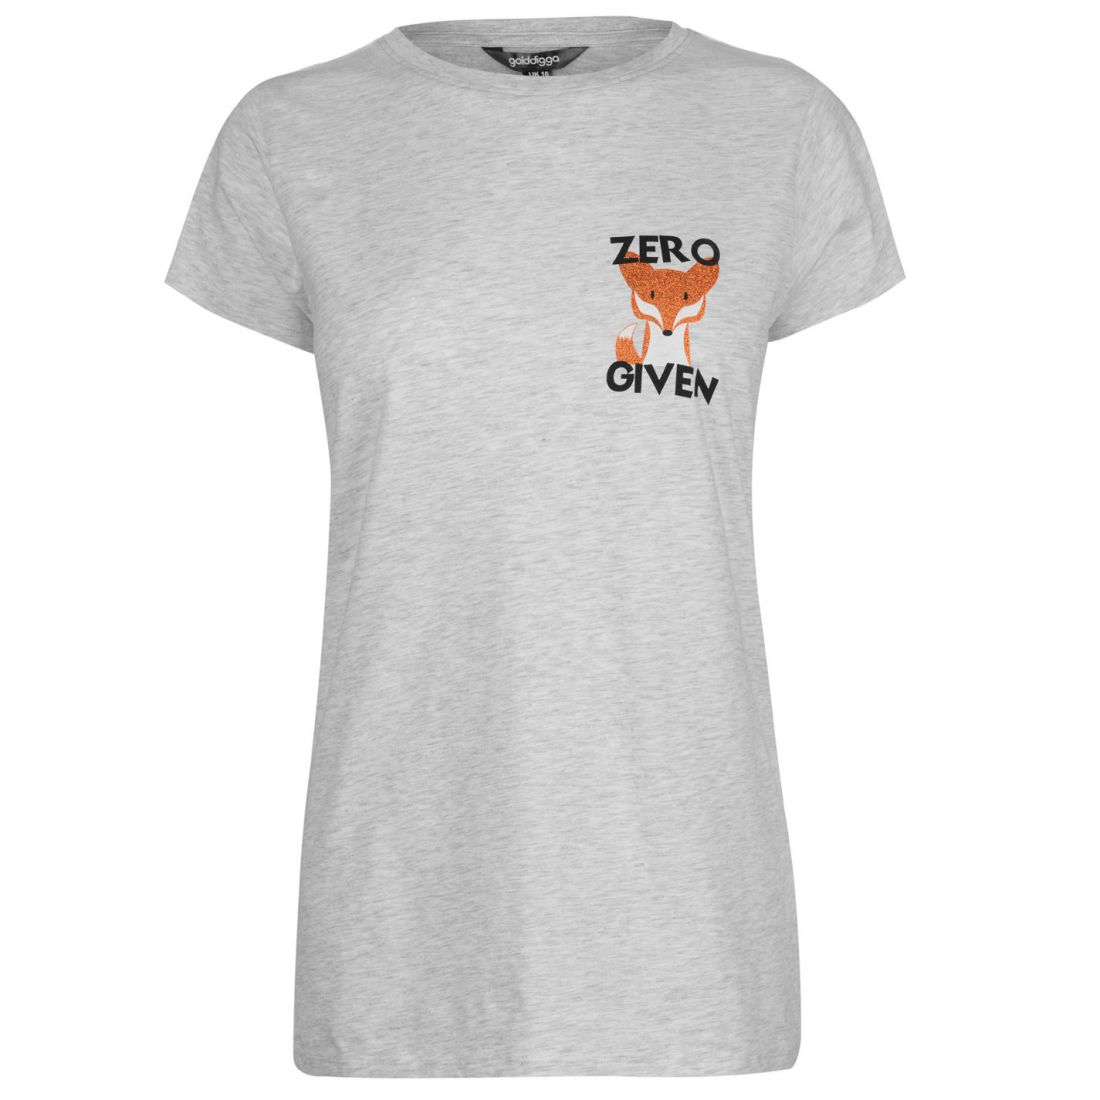 Zero Fox Given Mens Short-Sleeve Polo T-Shirt Tee for Work Office Tops T Shirt